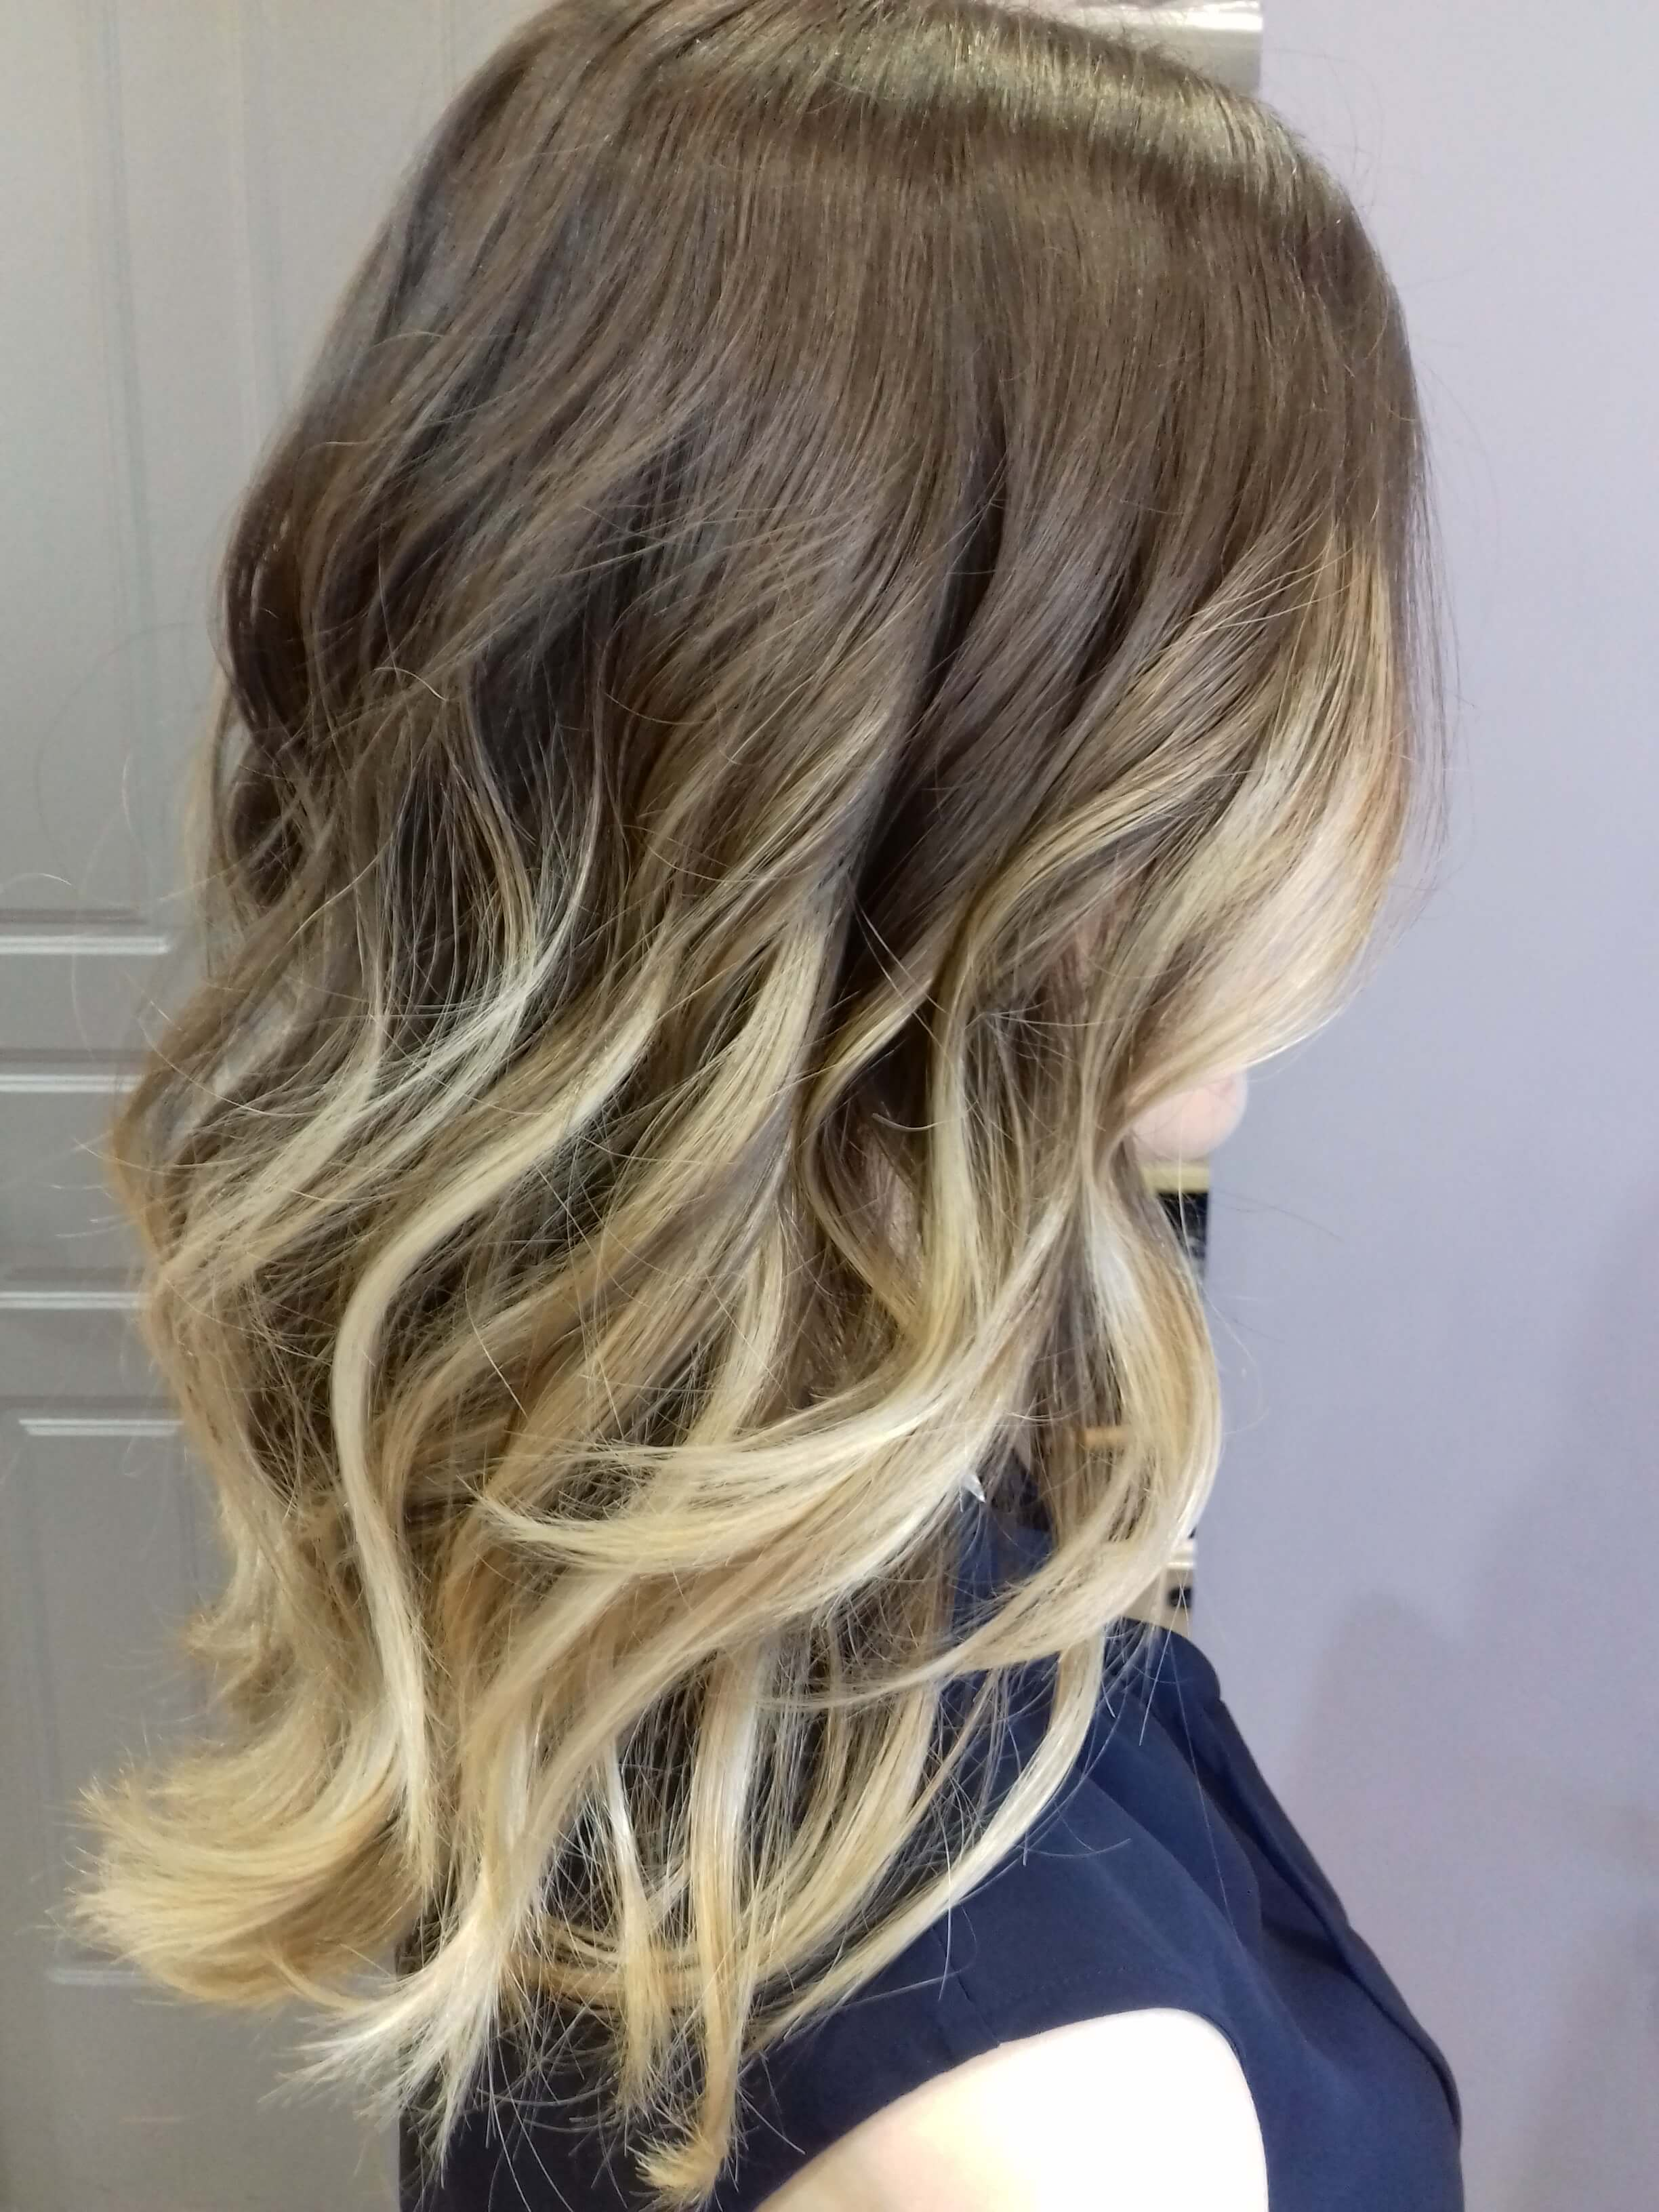 ... Yiannis Hair Proposals - 30 ed993339921